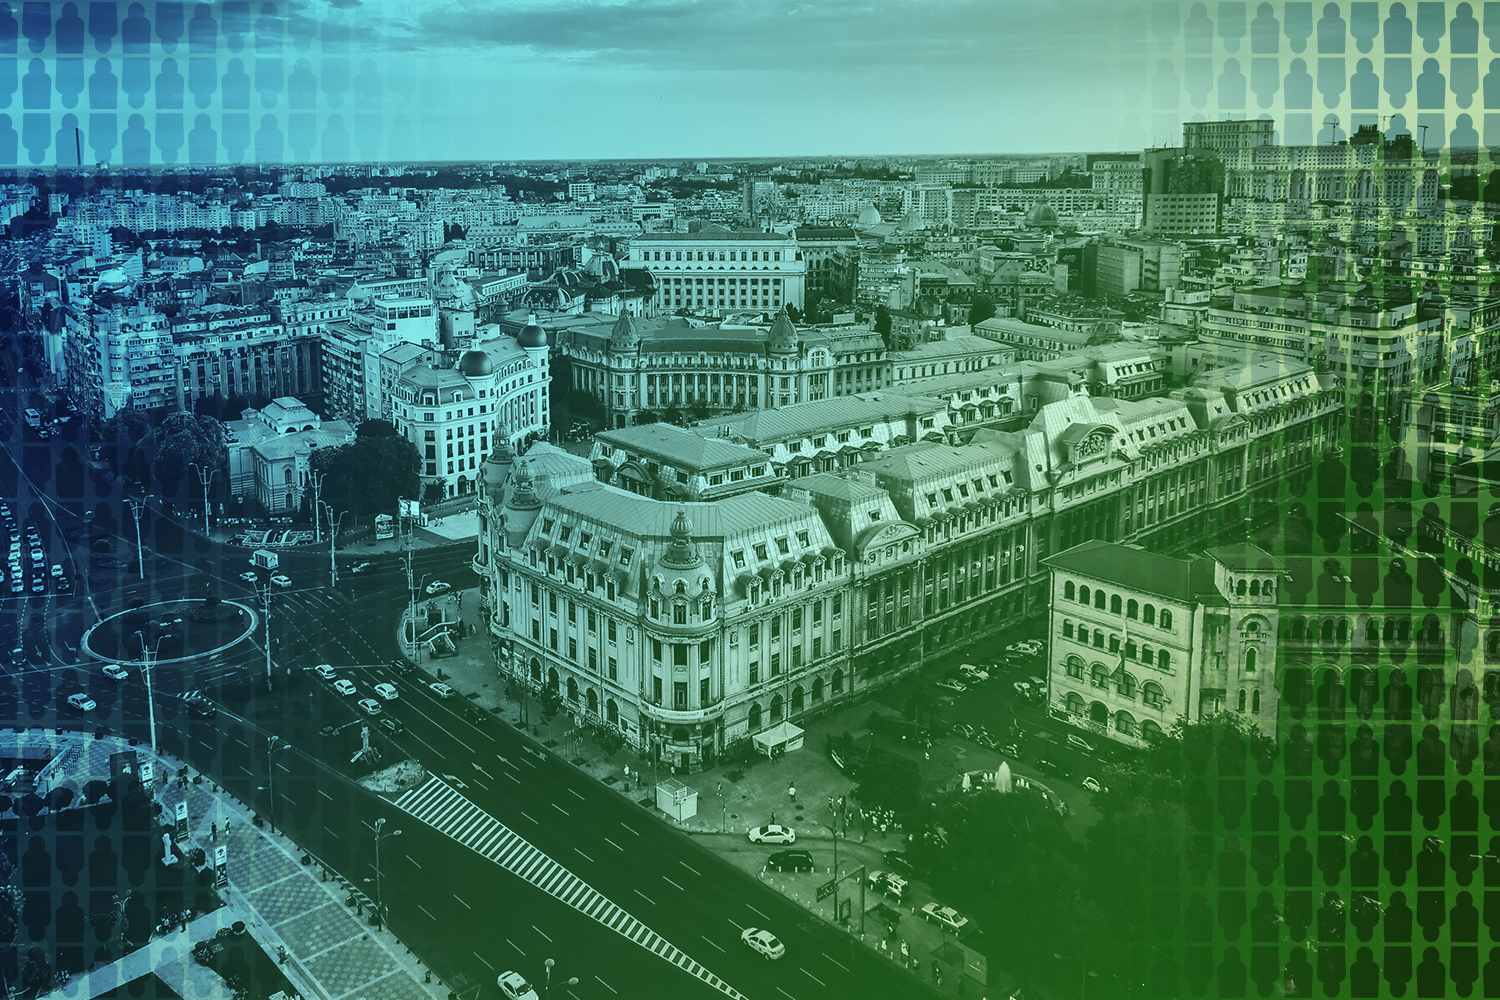 color-treated aerial photo of Bucharest, Romania